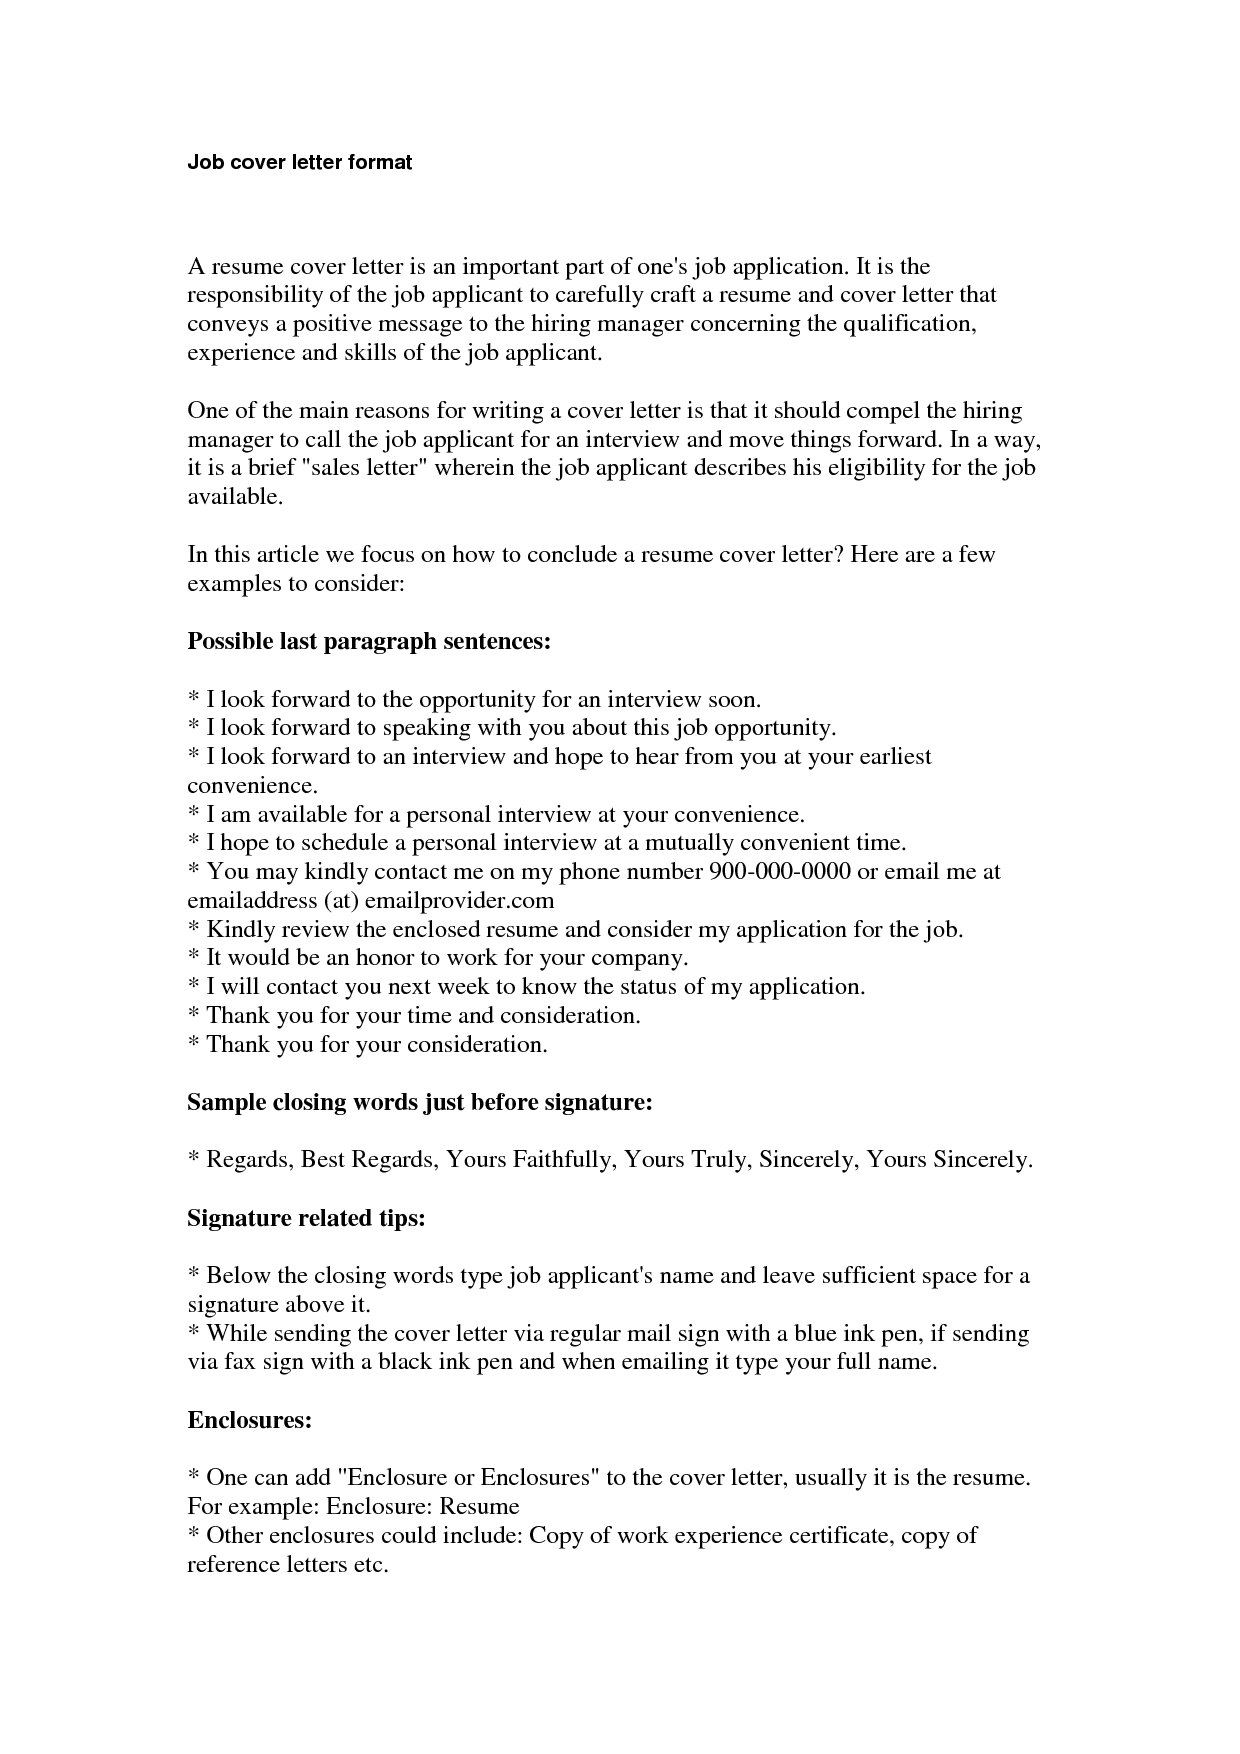 Cover Letter Examples Job Cover Letter Format Job Cover Letter